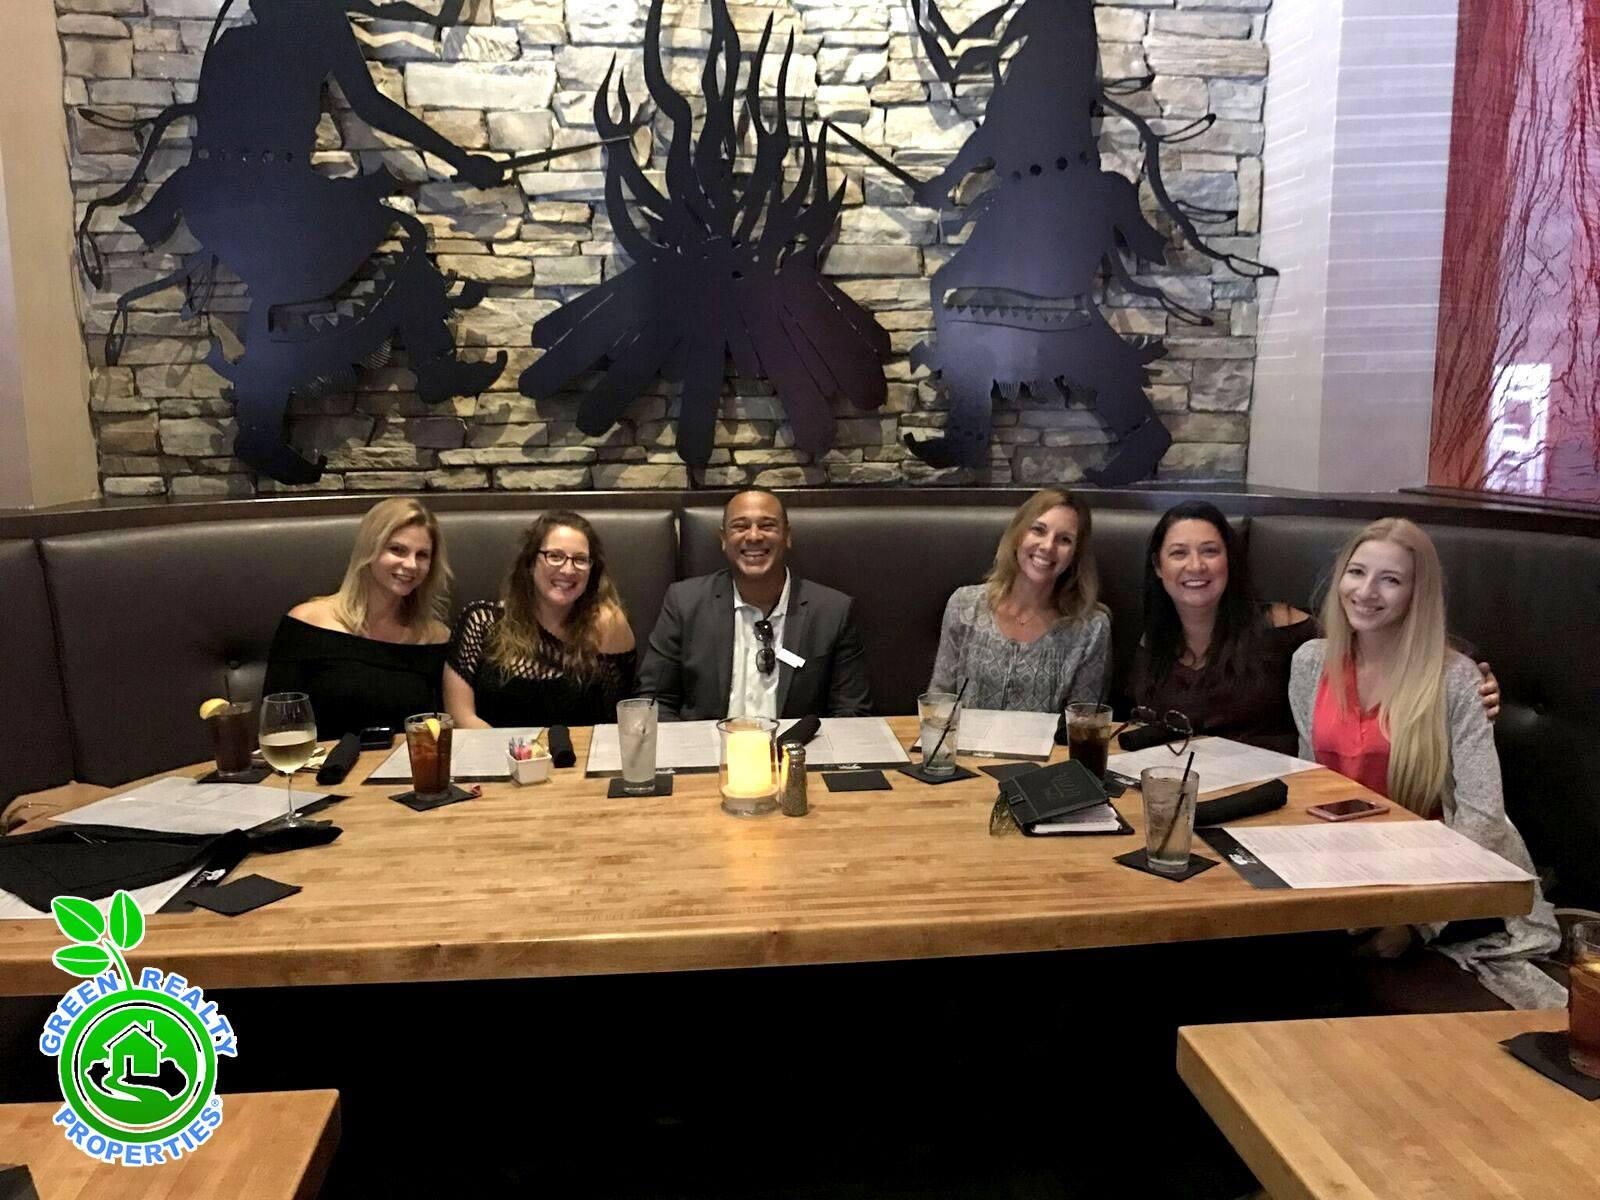 Green Realty Real Estate Agents! Our Green Realty Team Celebration!